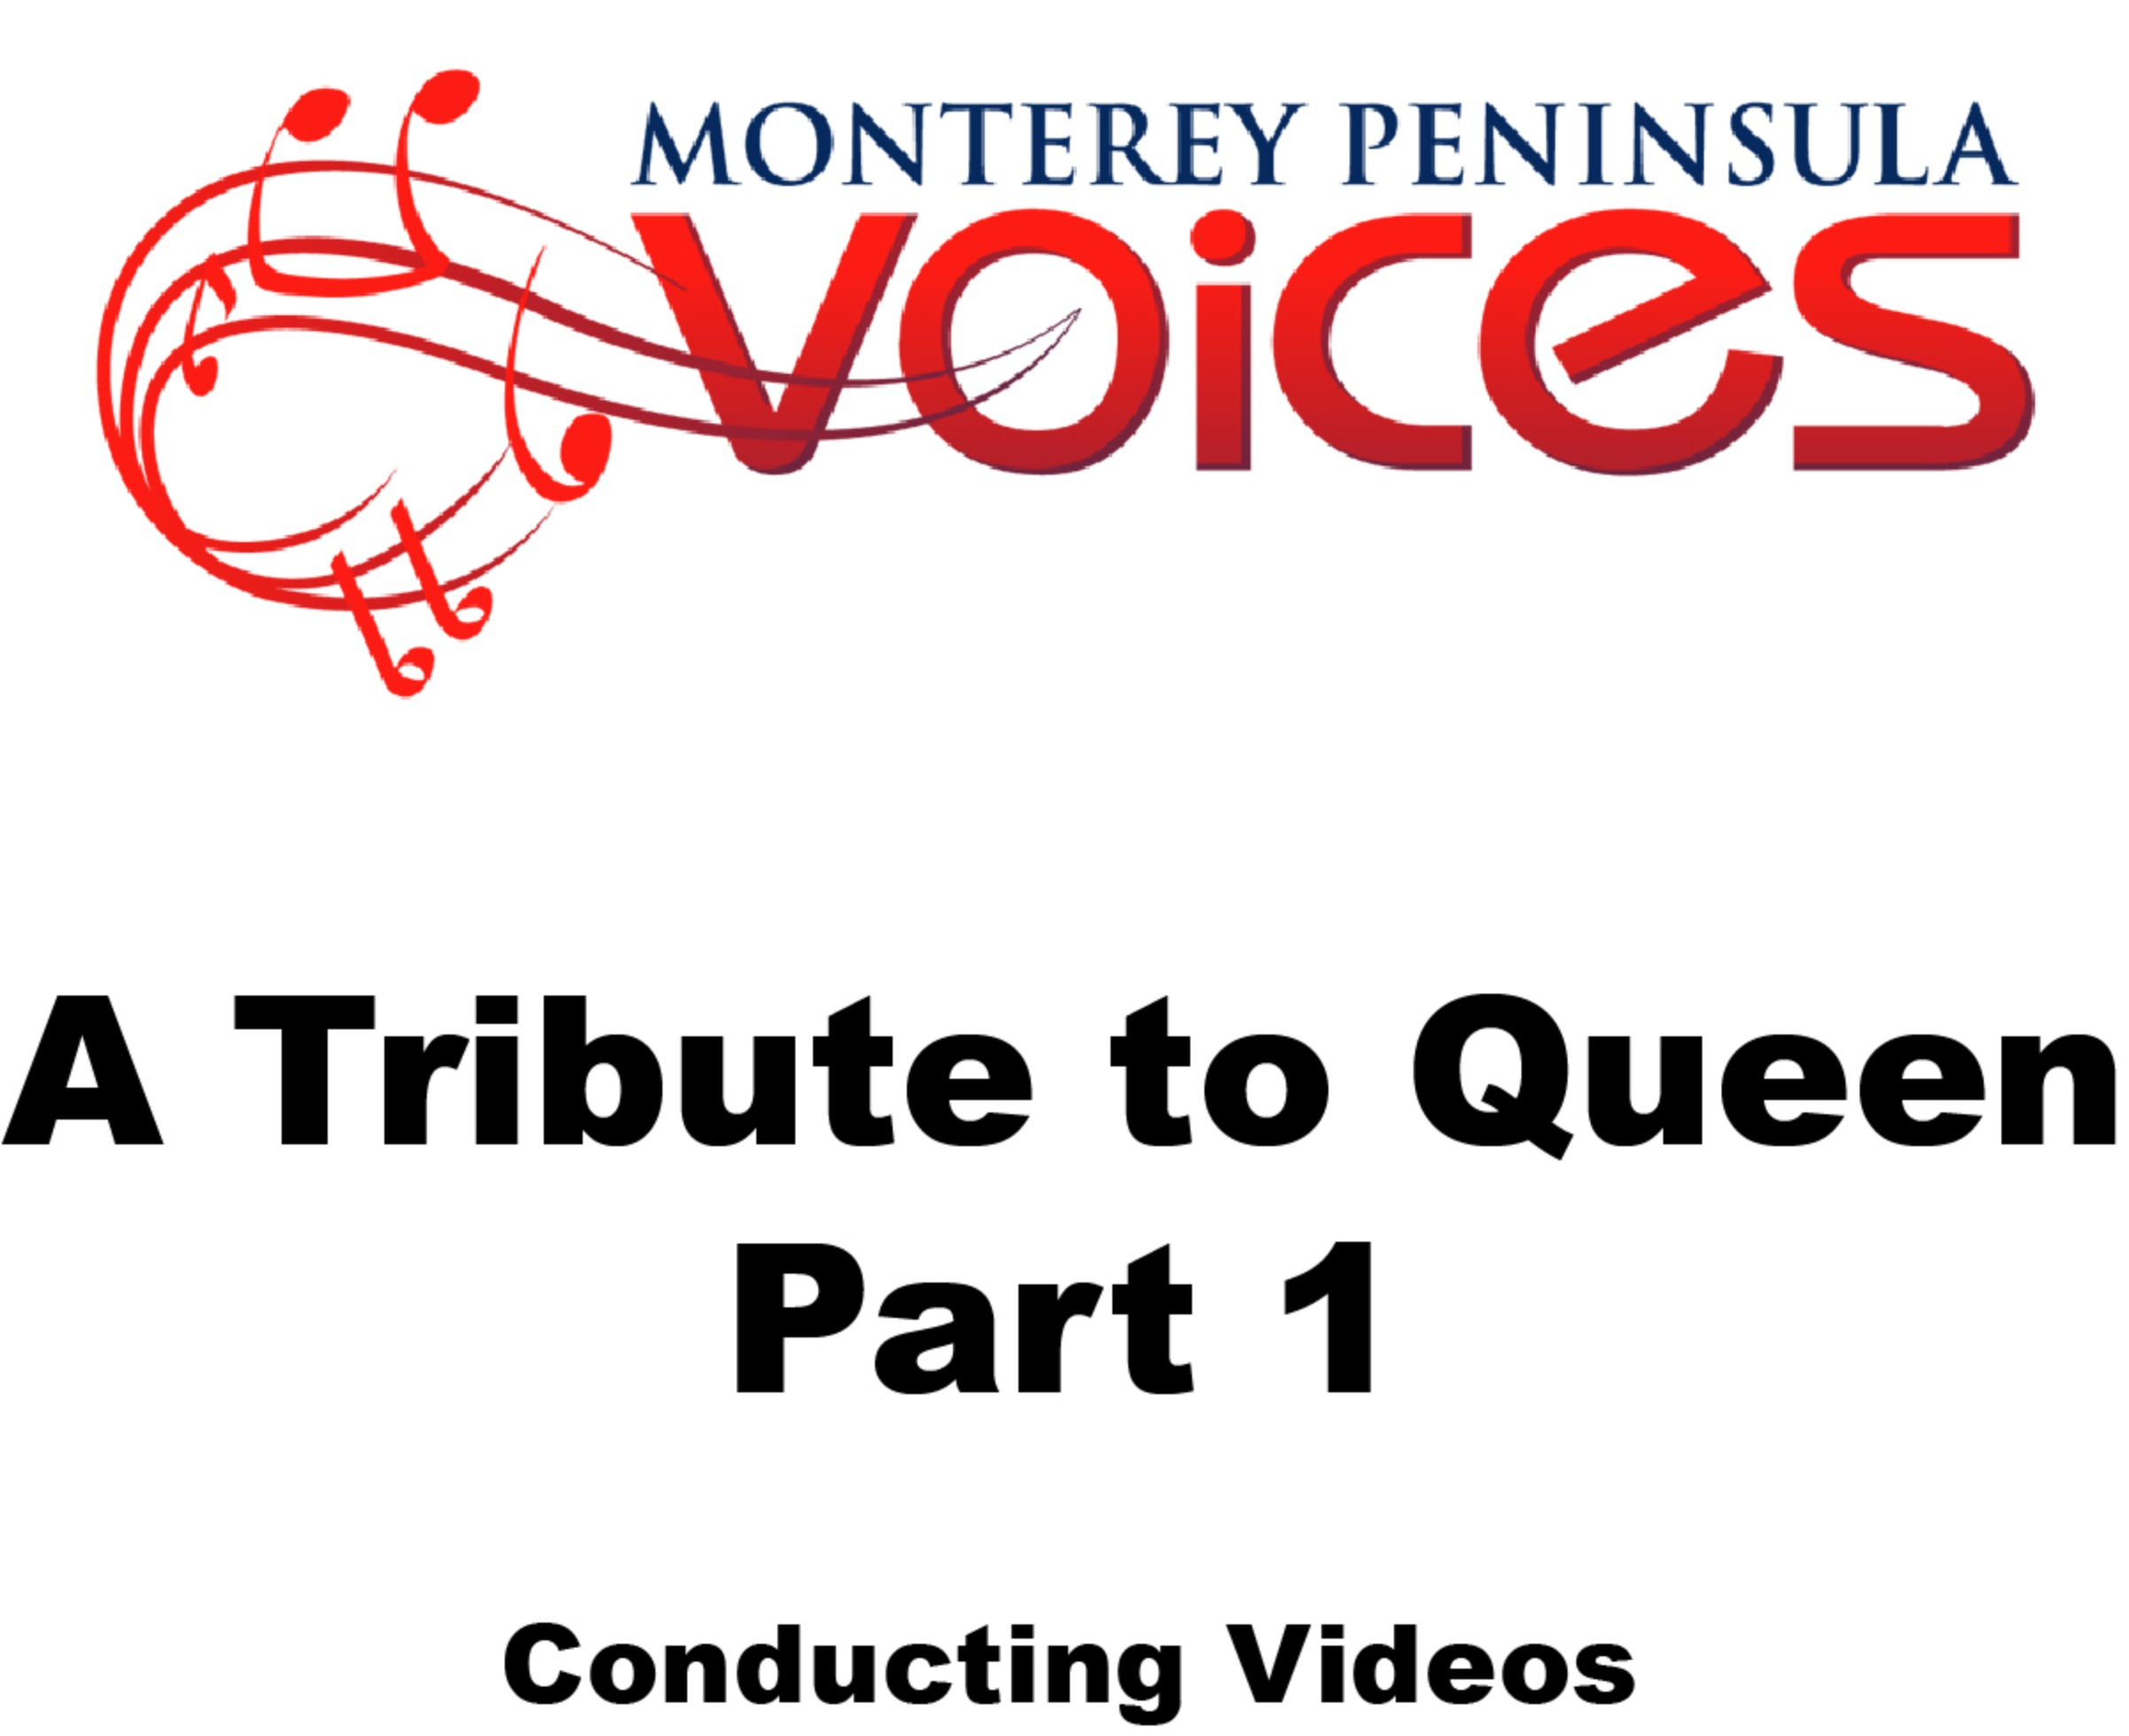 MPV - PART 1 of Tribute to Queen - CV